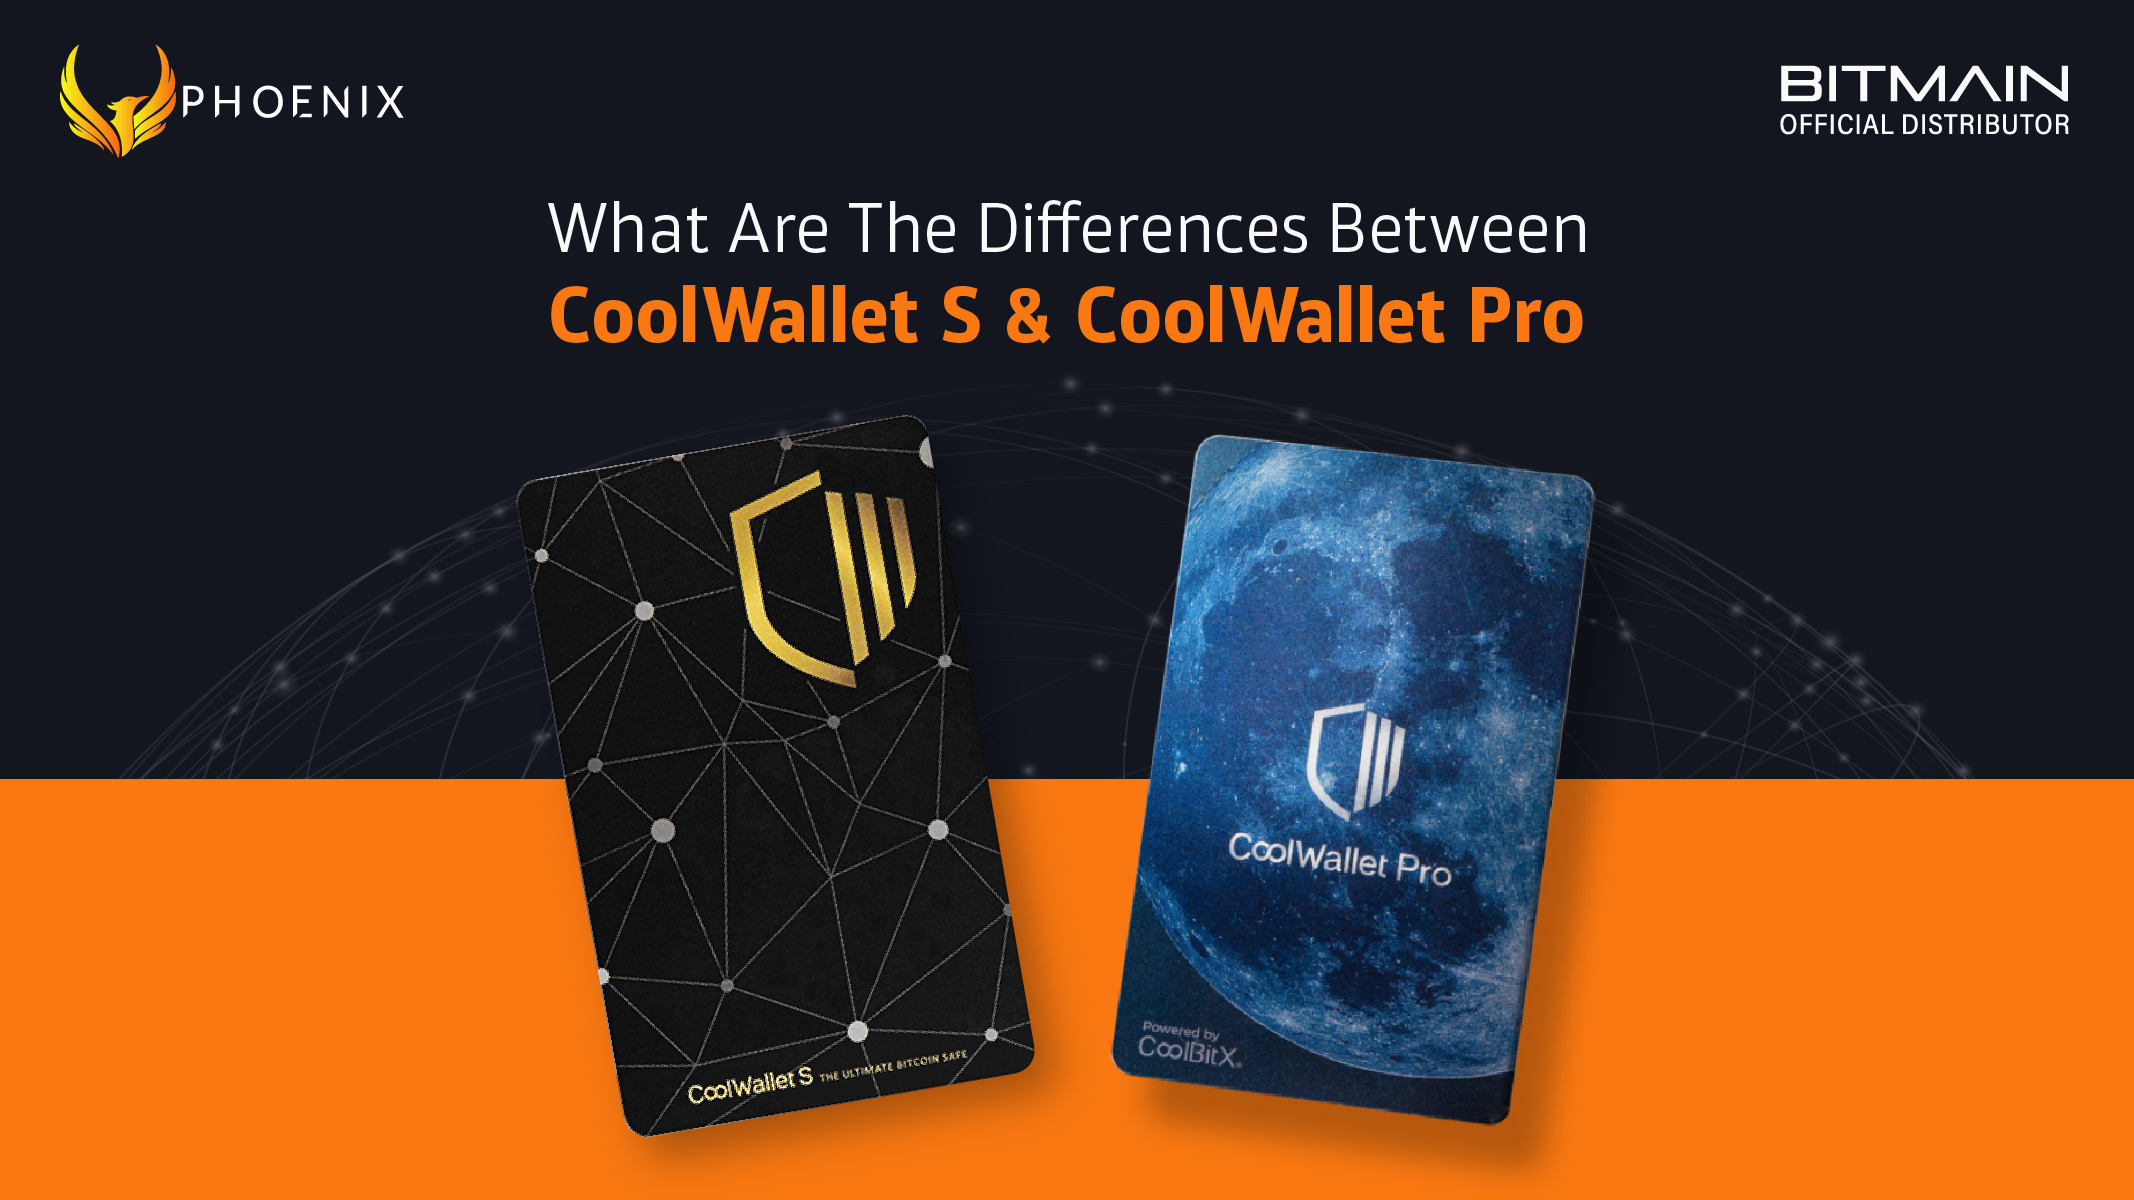 CoolWallet Pro